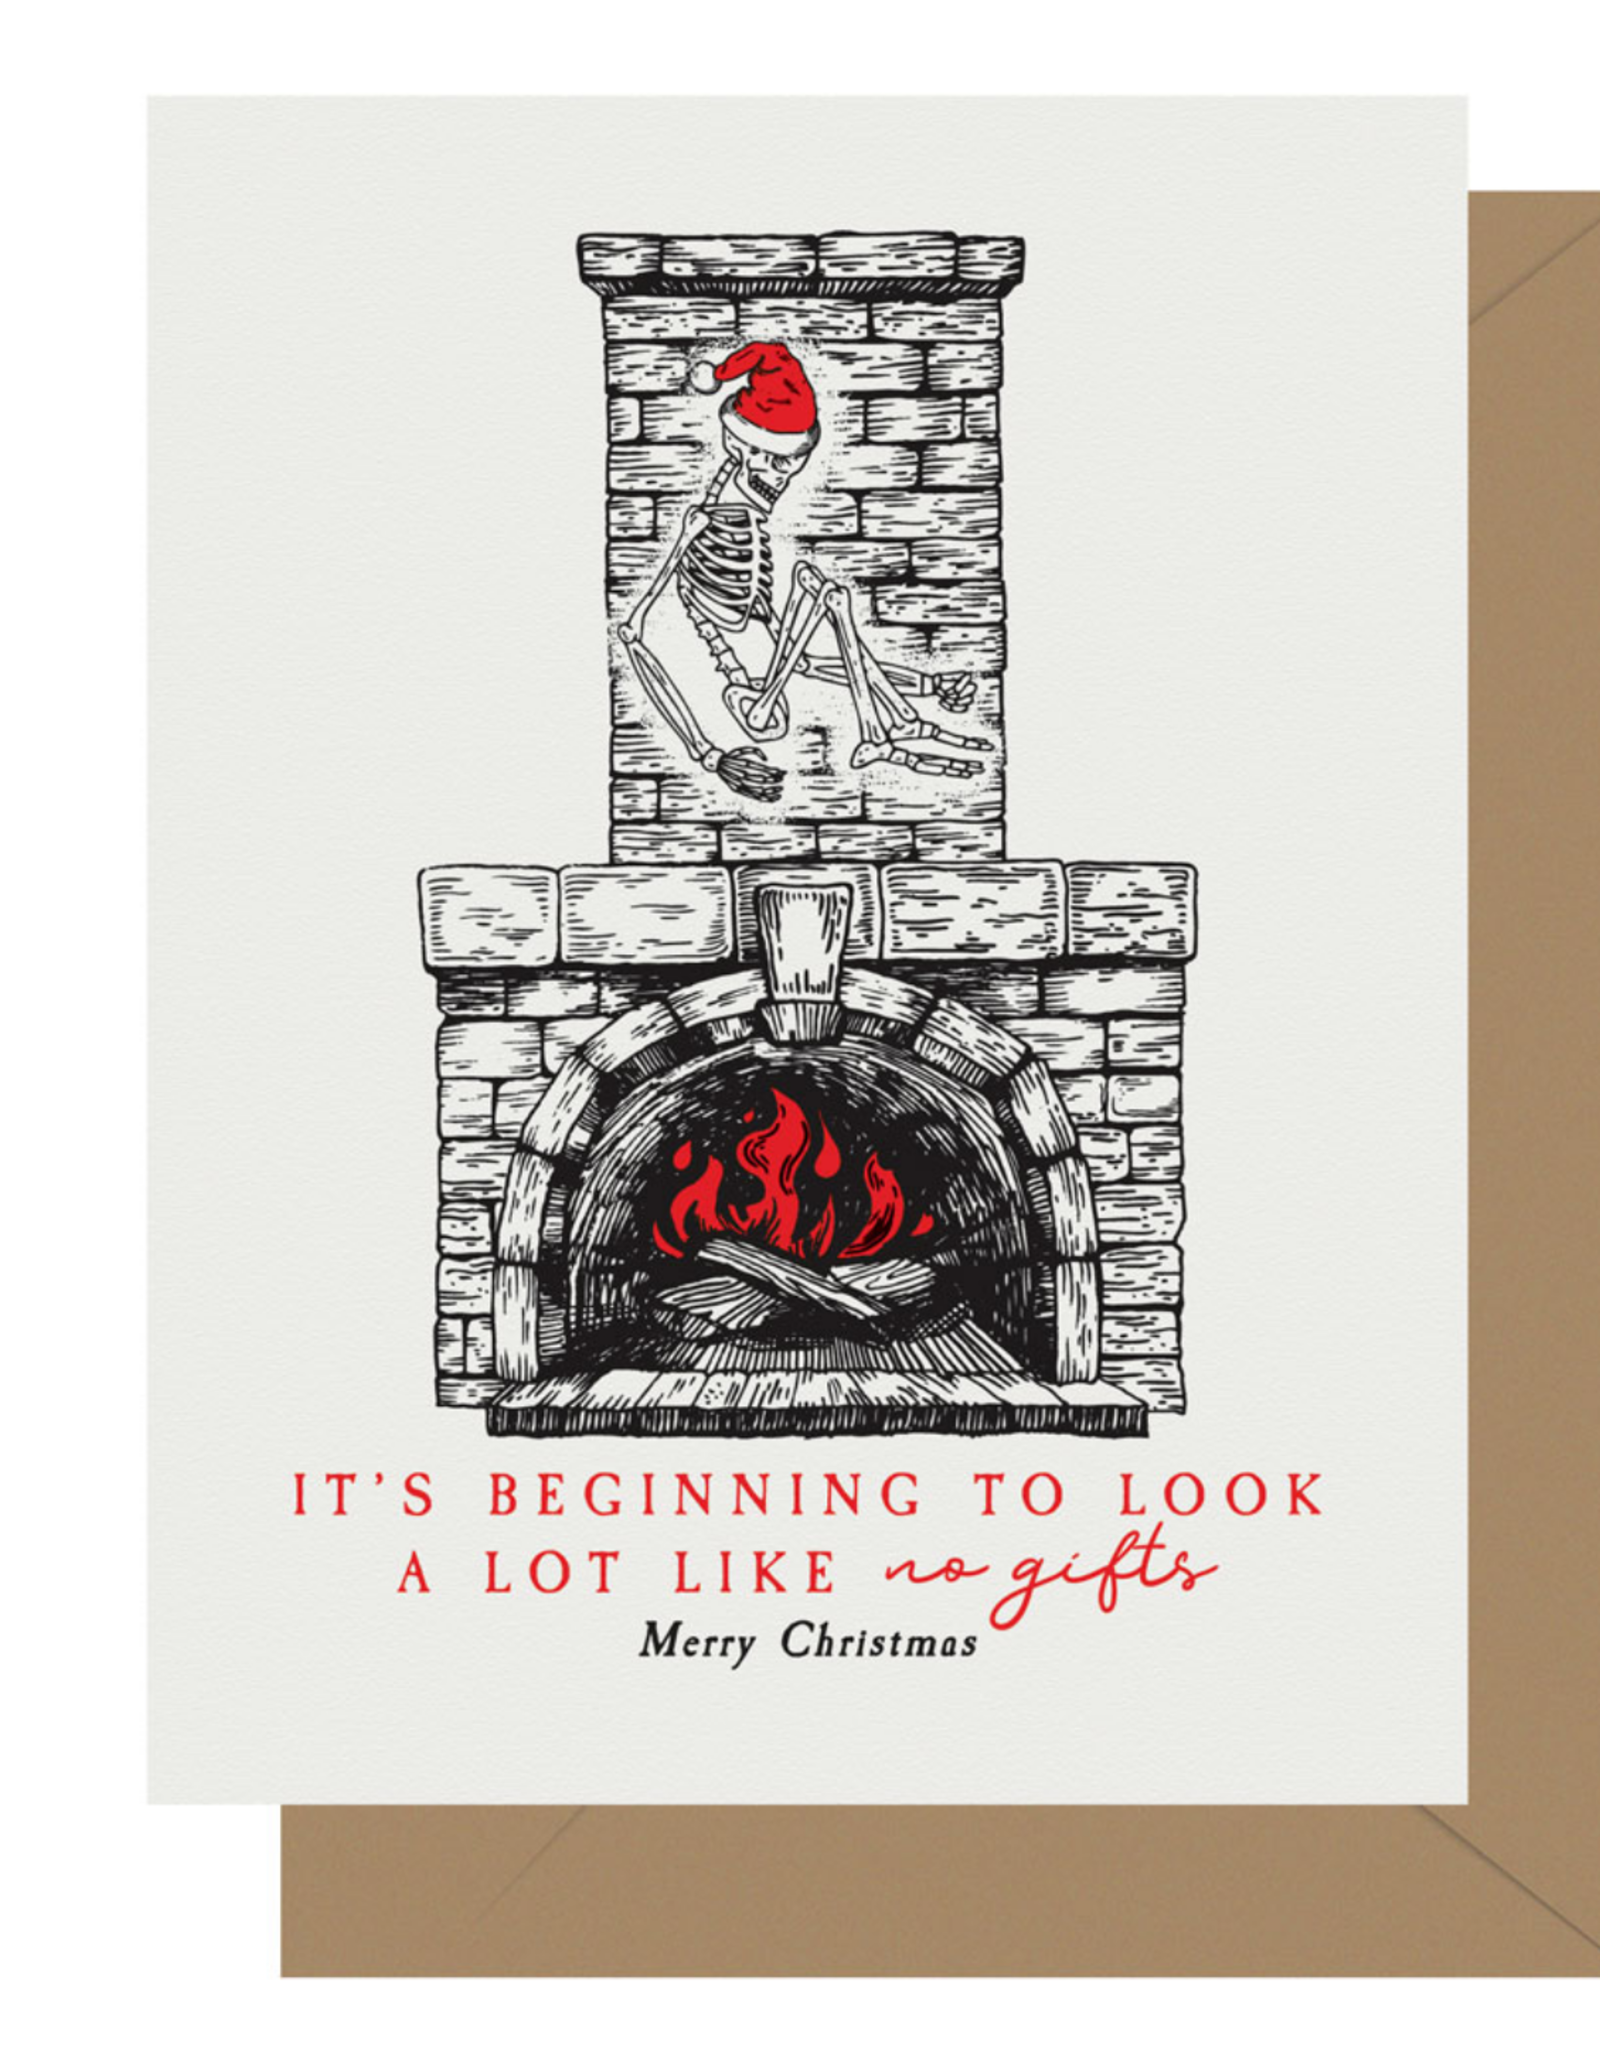 It's Beginning to Look a Lot Like No Gifts Merry Christmas Greeting Card